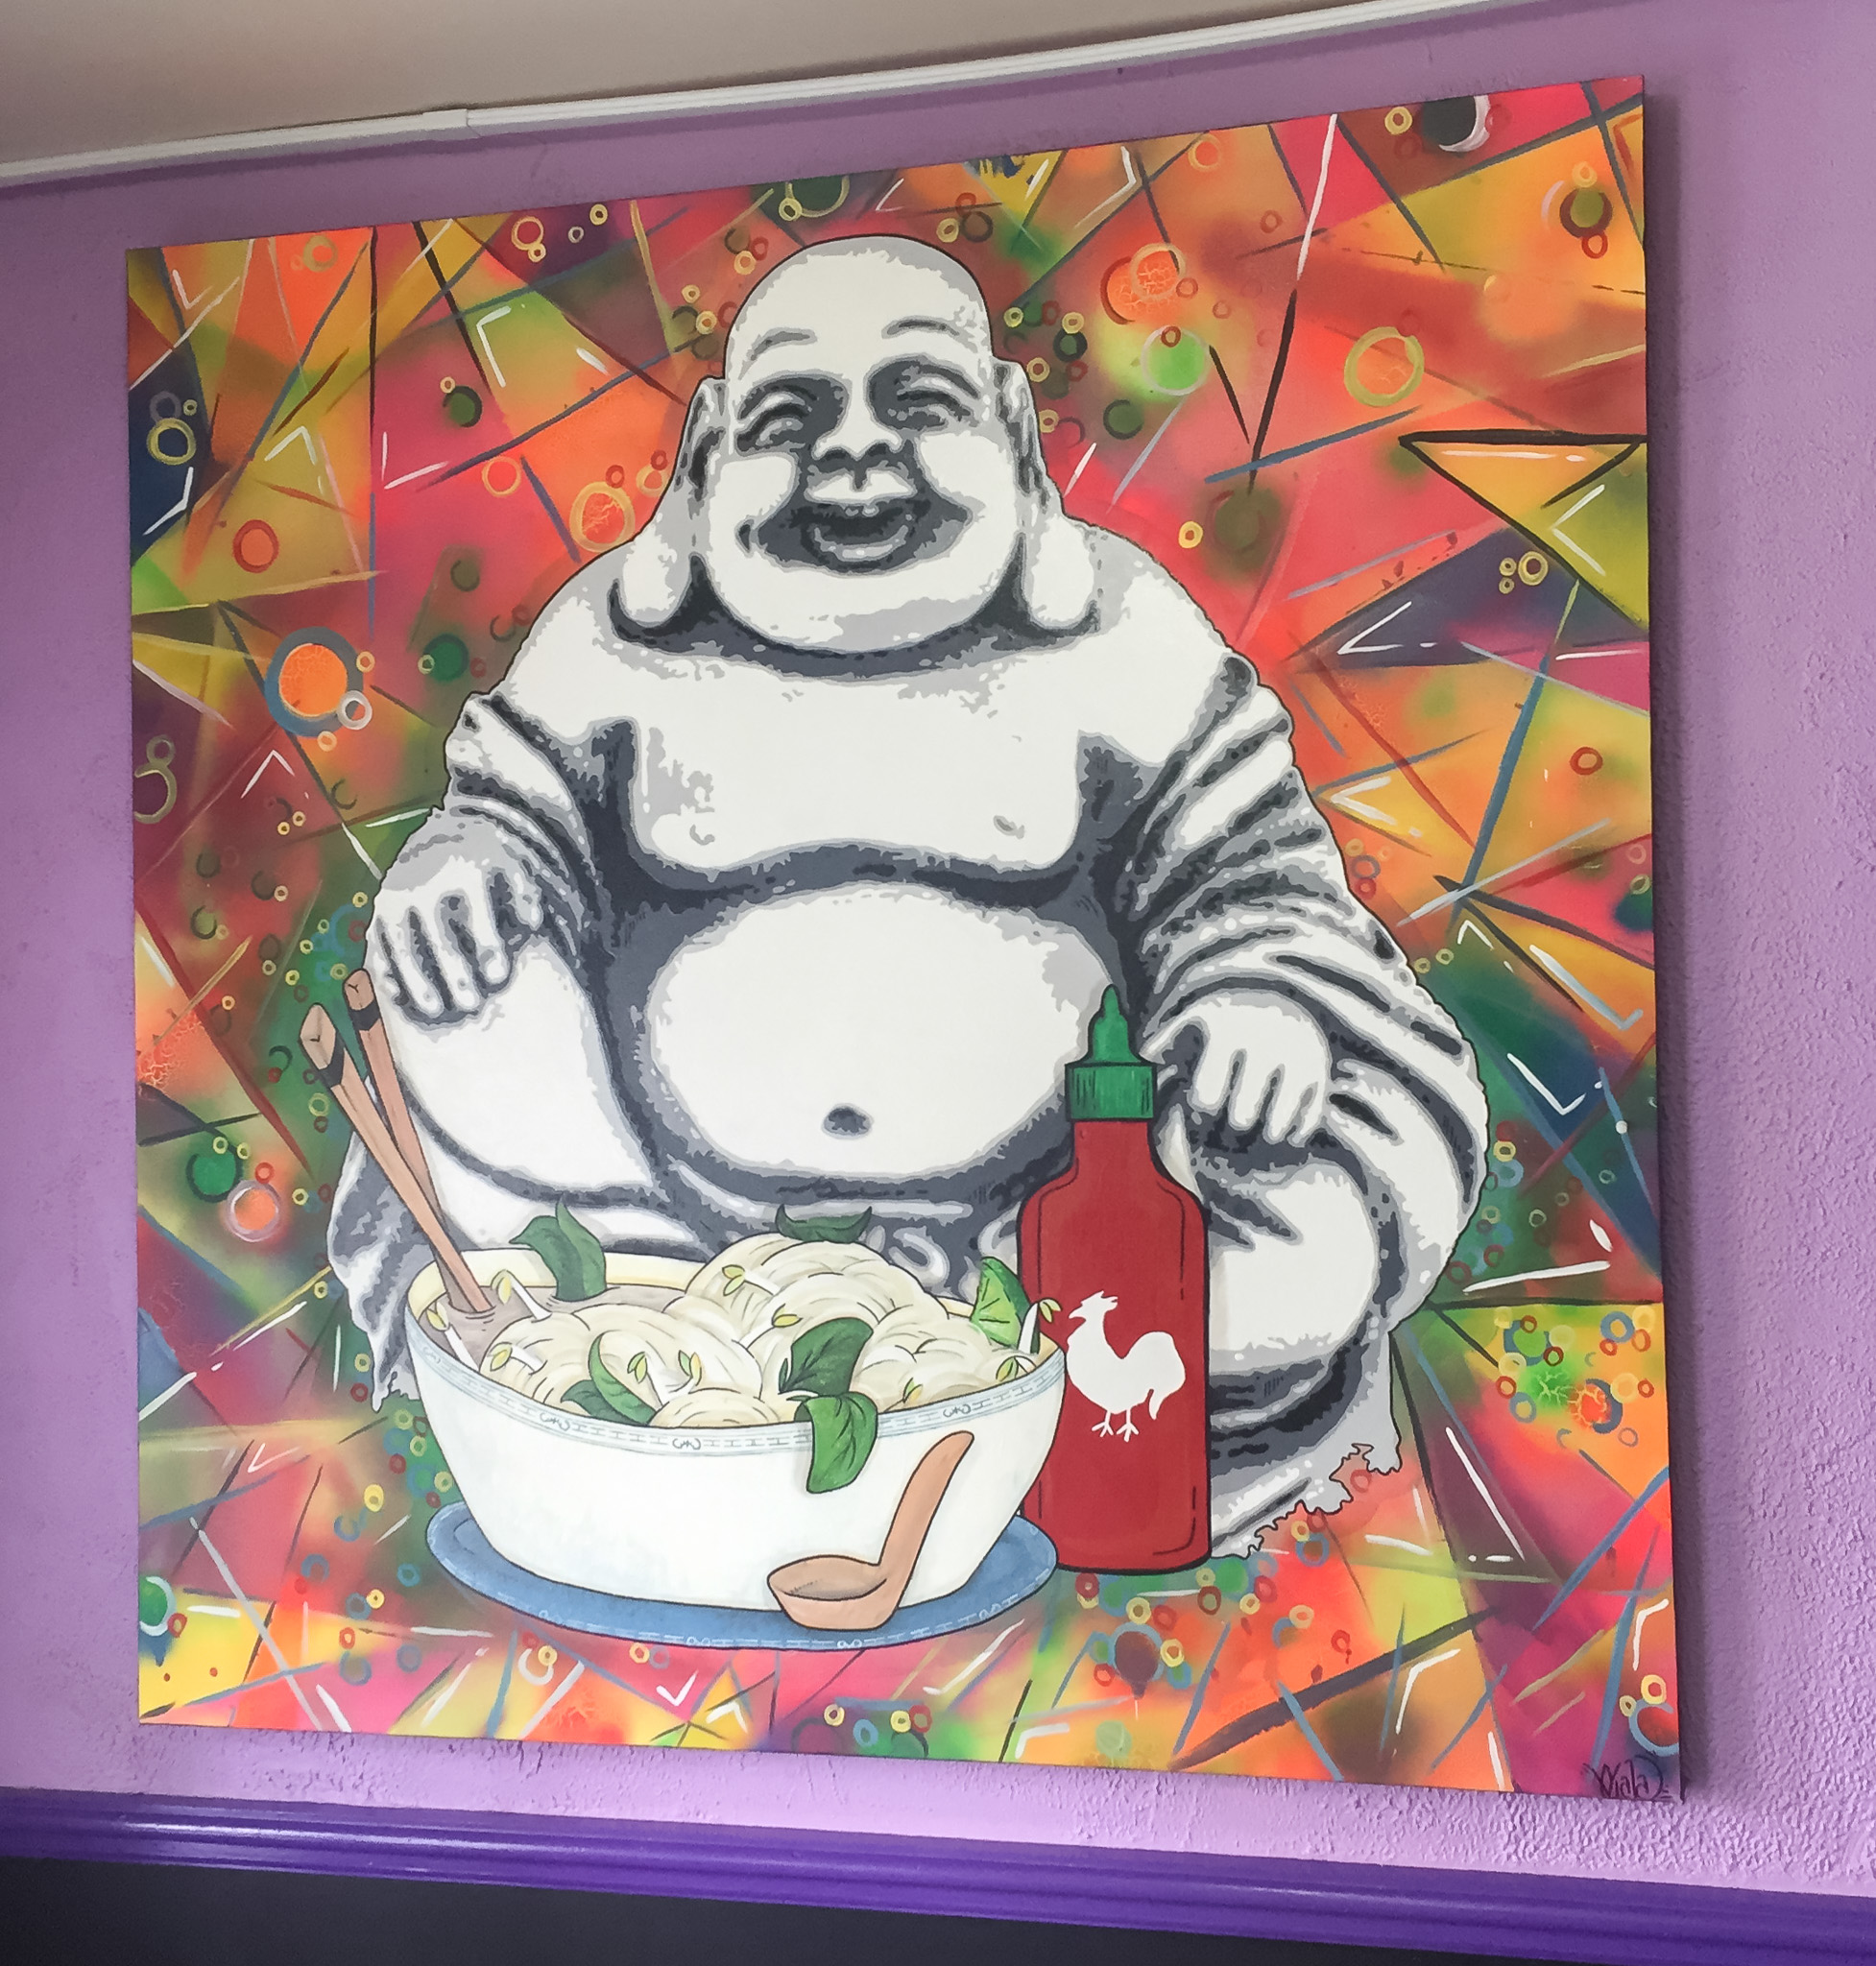 This Jolly guy greets you when you enter Asian Hut